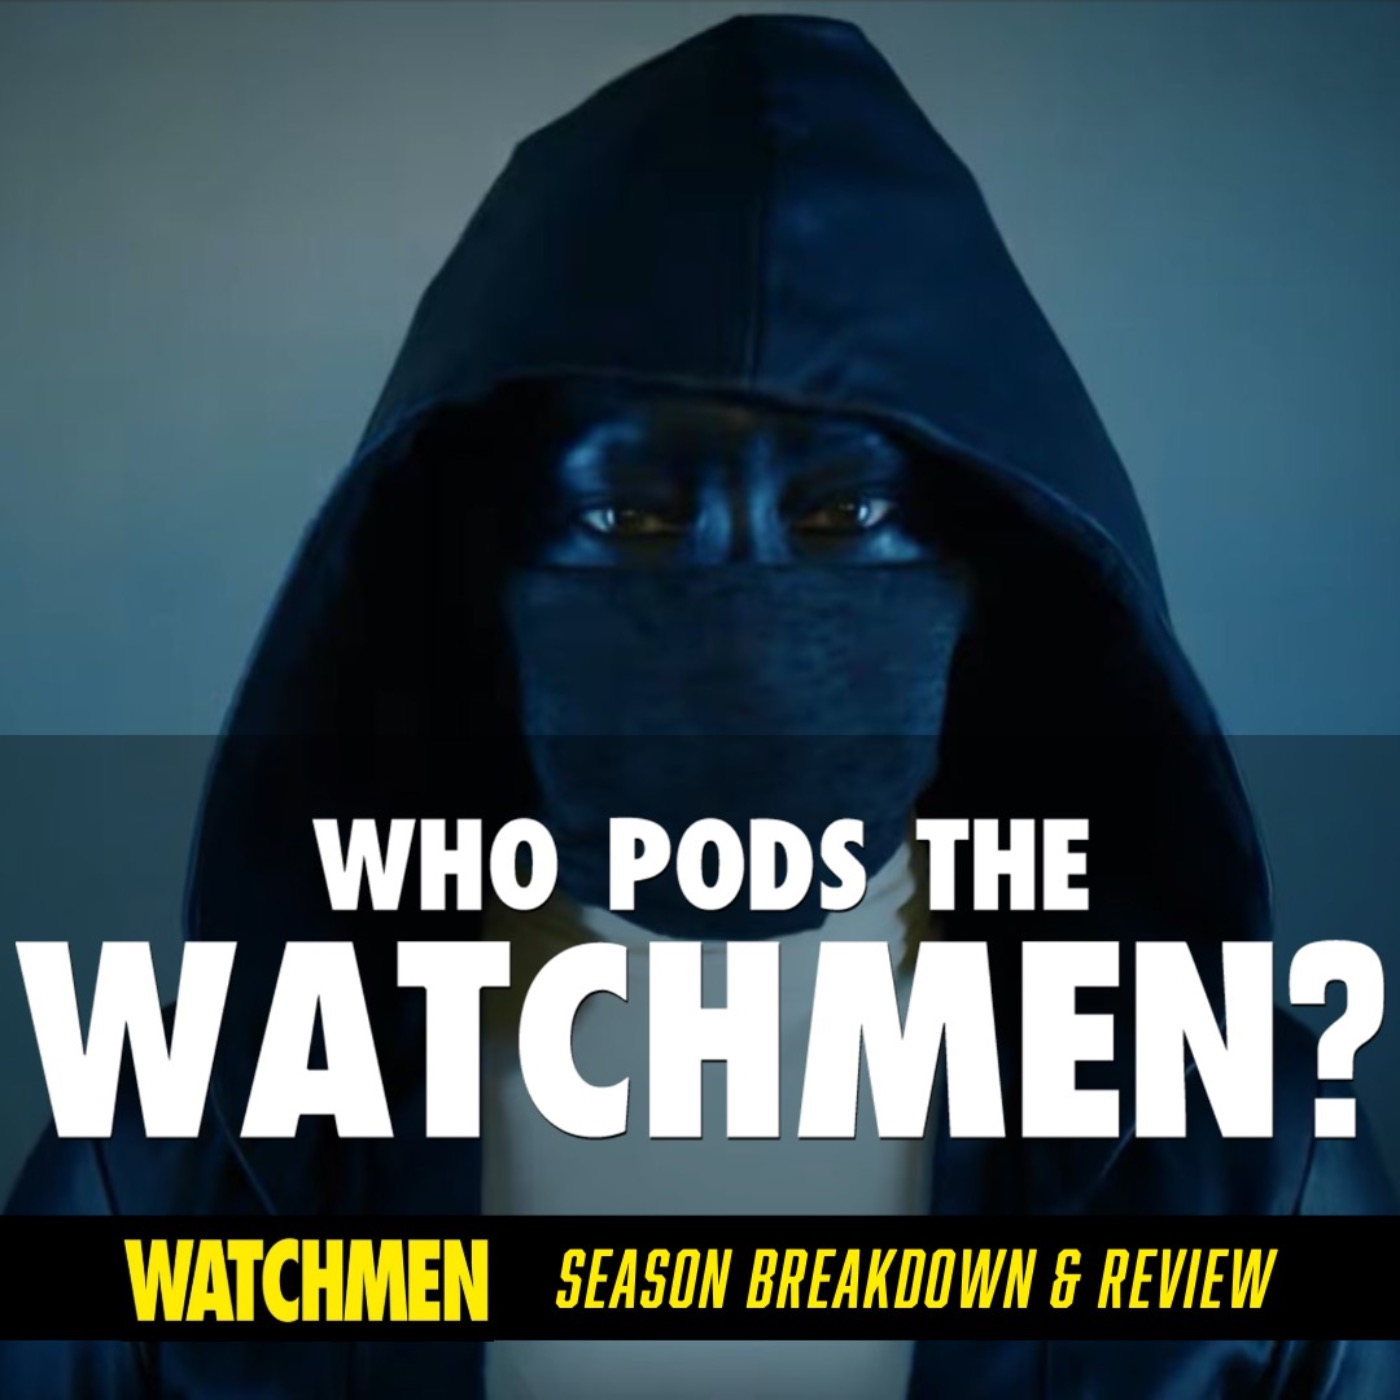 Watchmen Season One Breakdown & Review